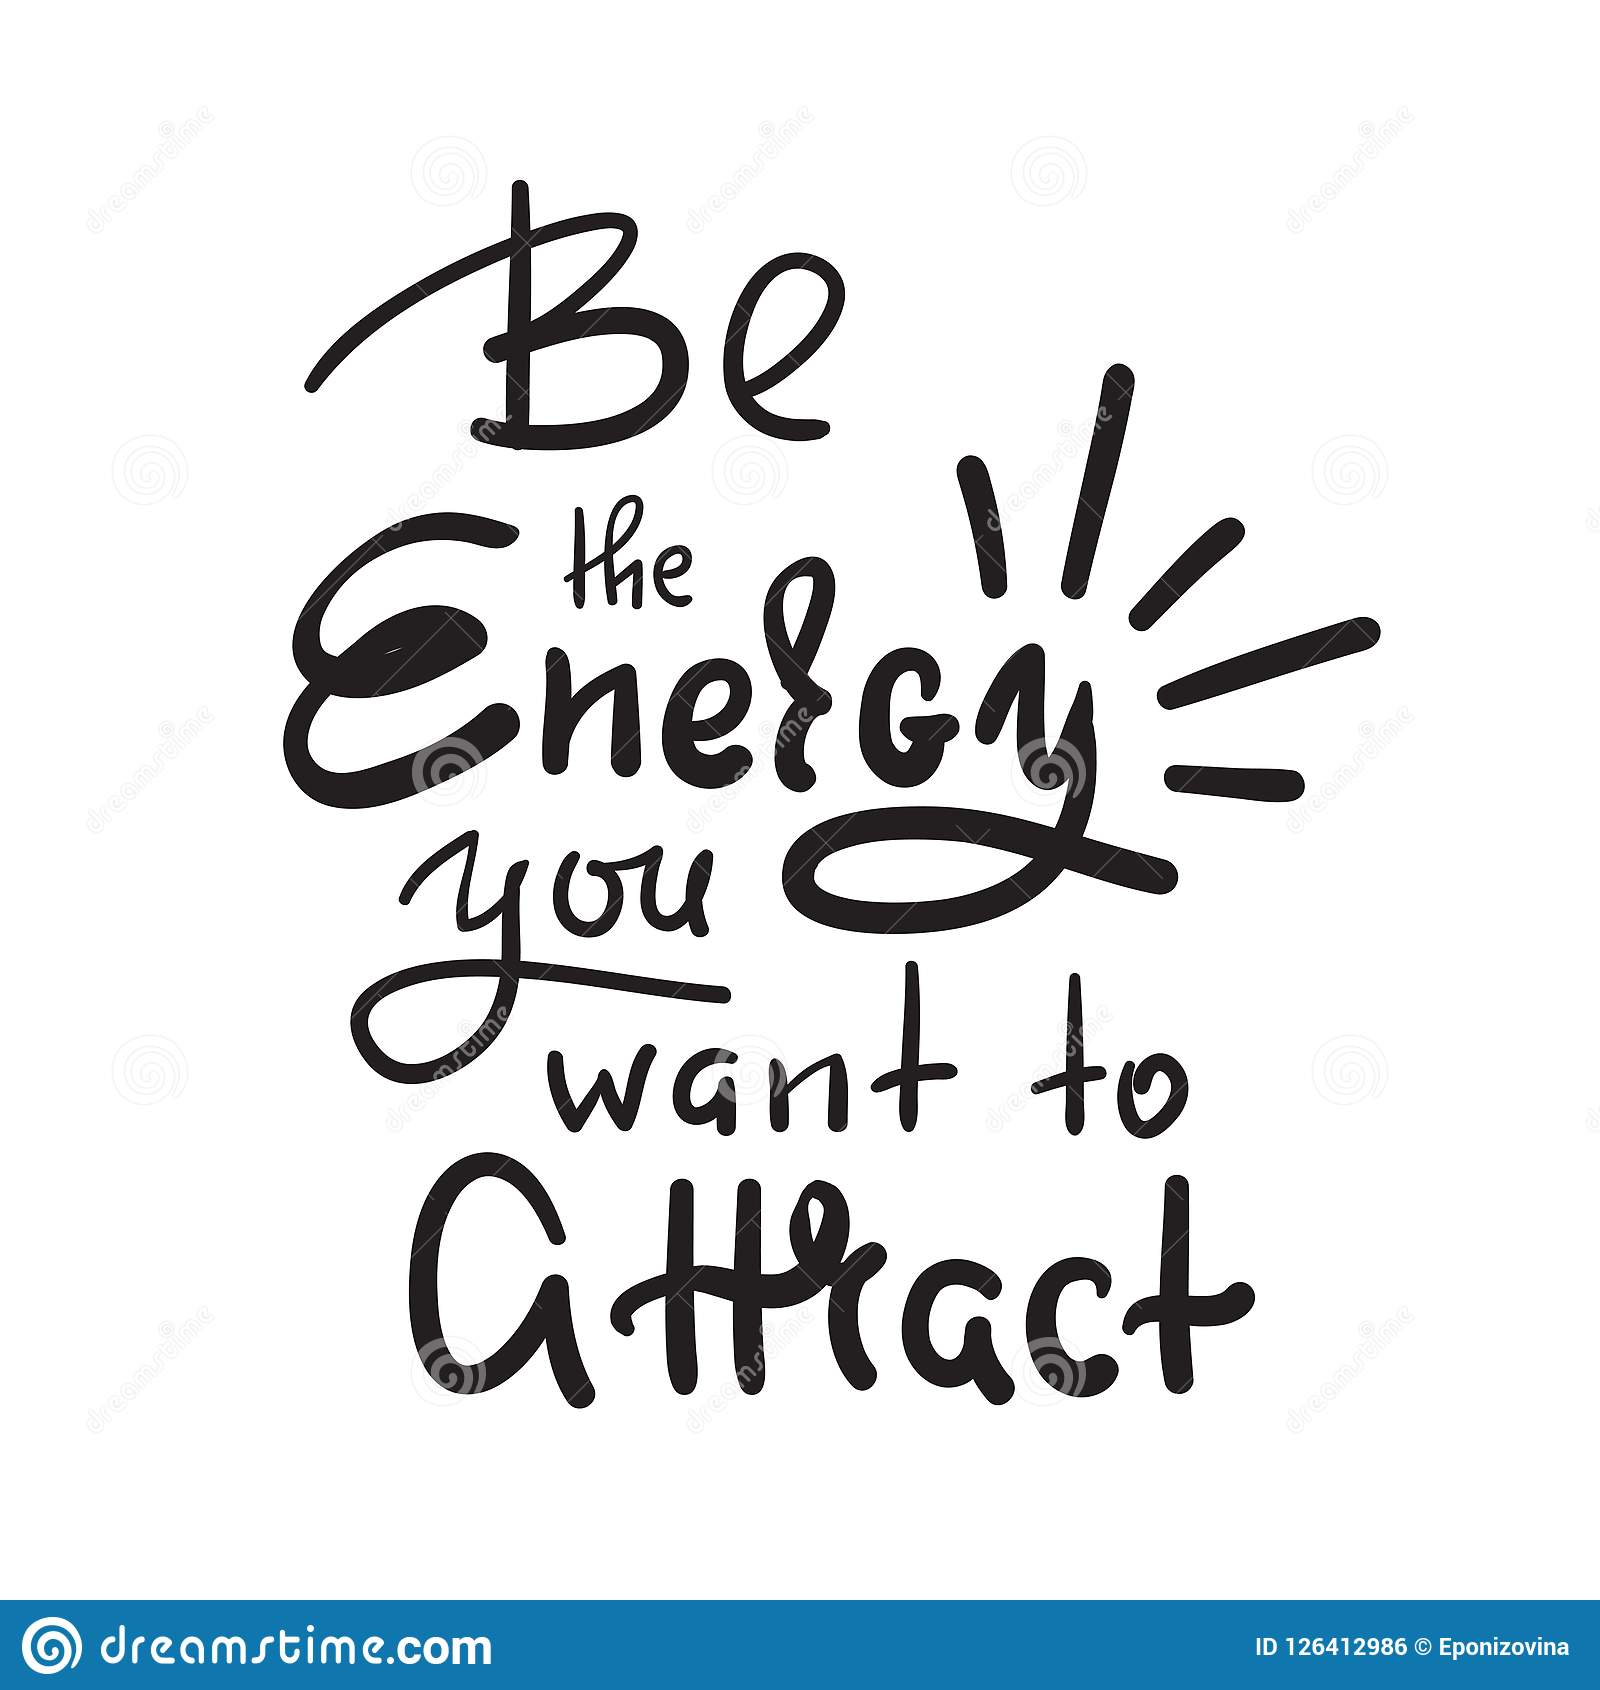 Be the energy you want no attract - inspire and motivational quote. Hand drawn beautiful lettering. Print for inspirational poster